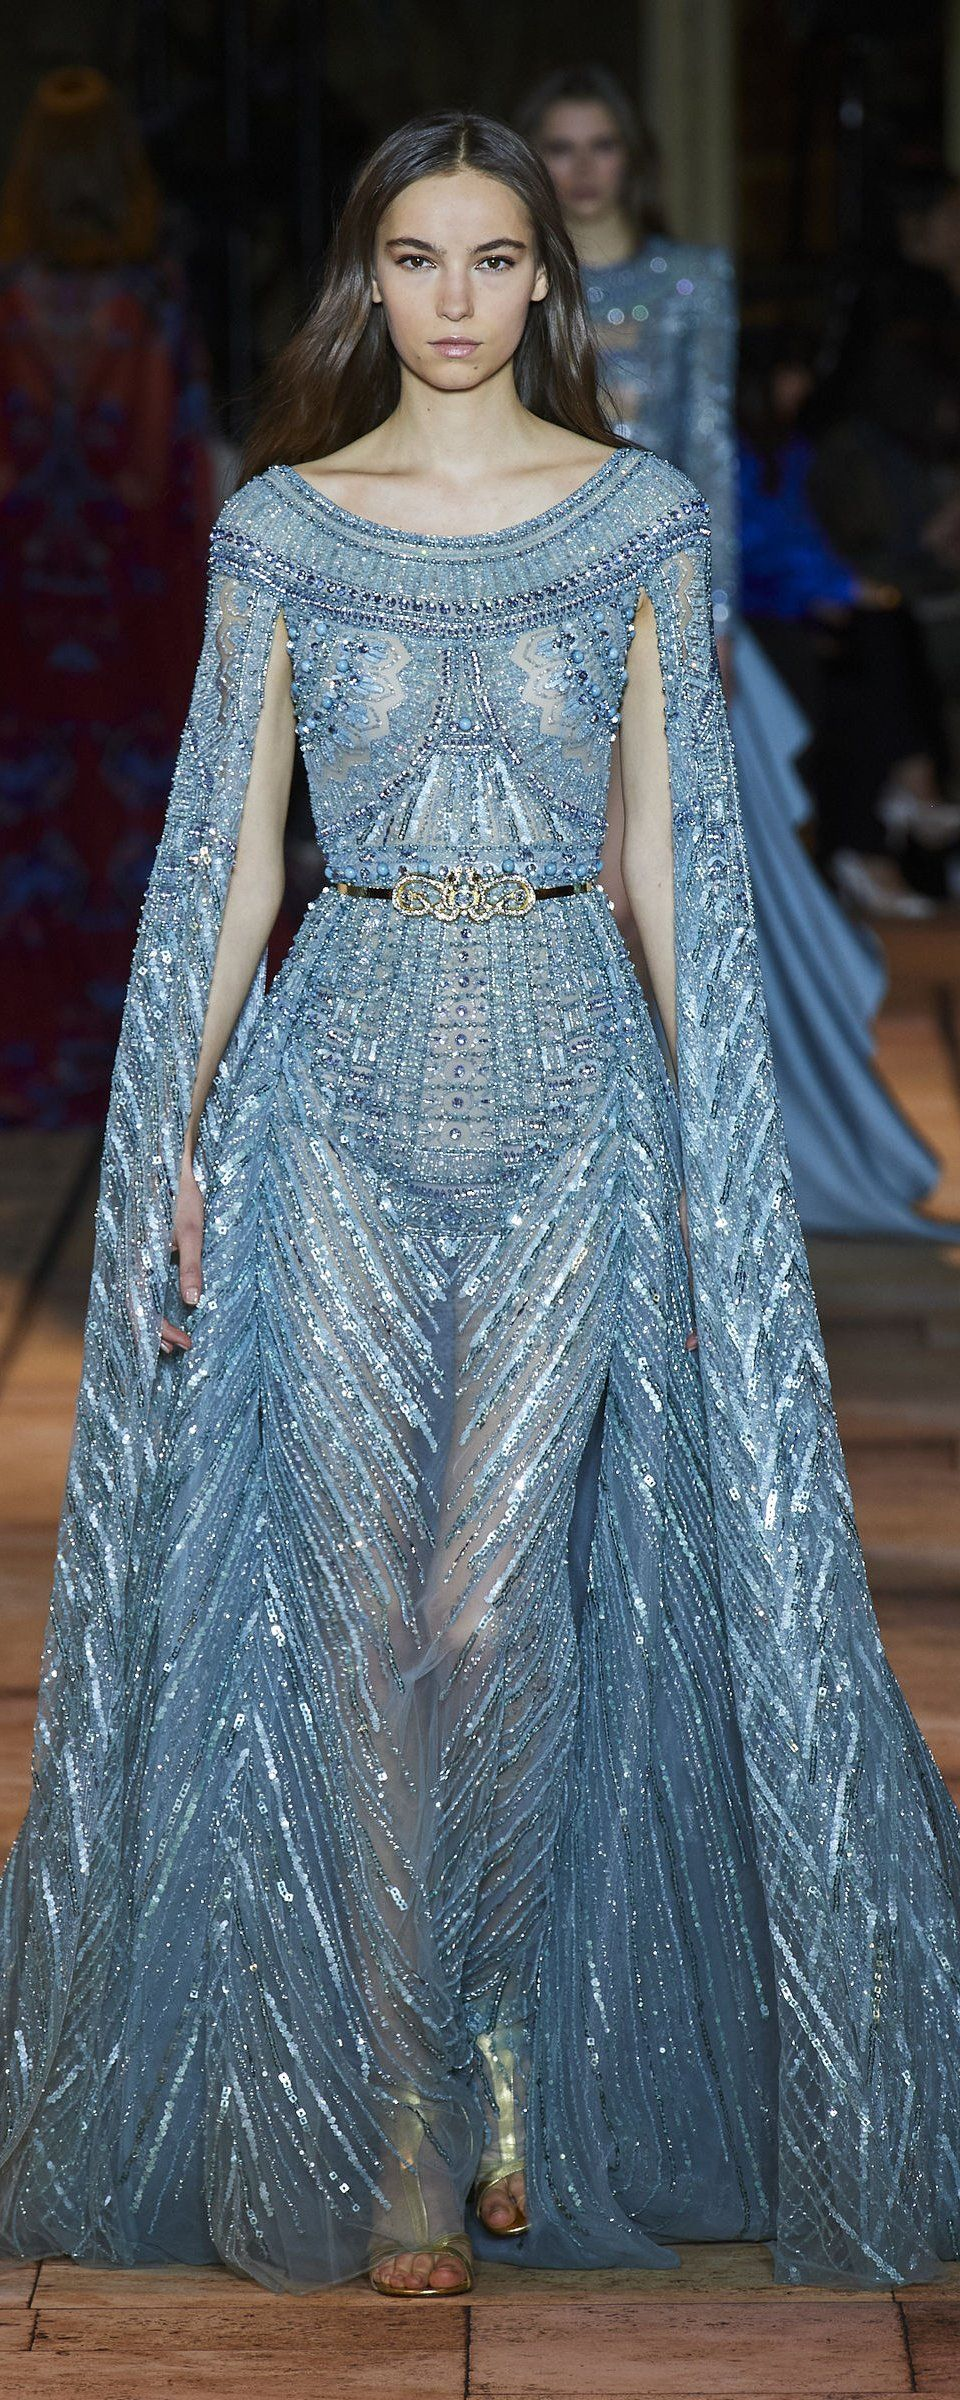 Zuhair Murad Spring Summer 2020 Couture Fashion Victor Harper Couture Couture